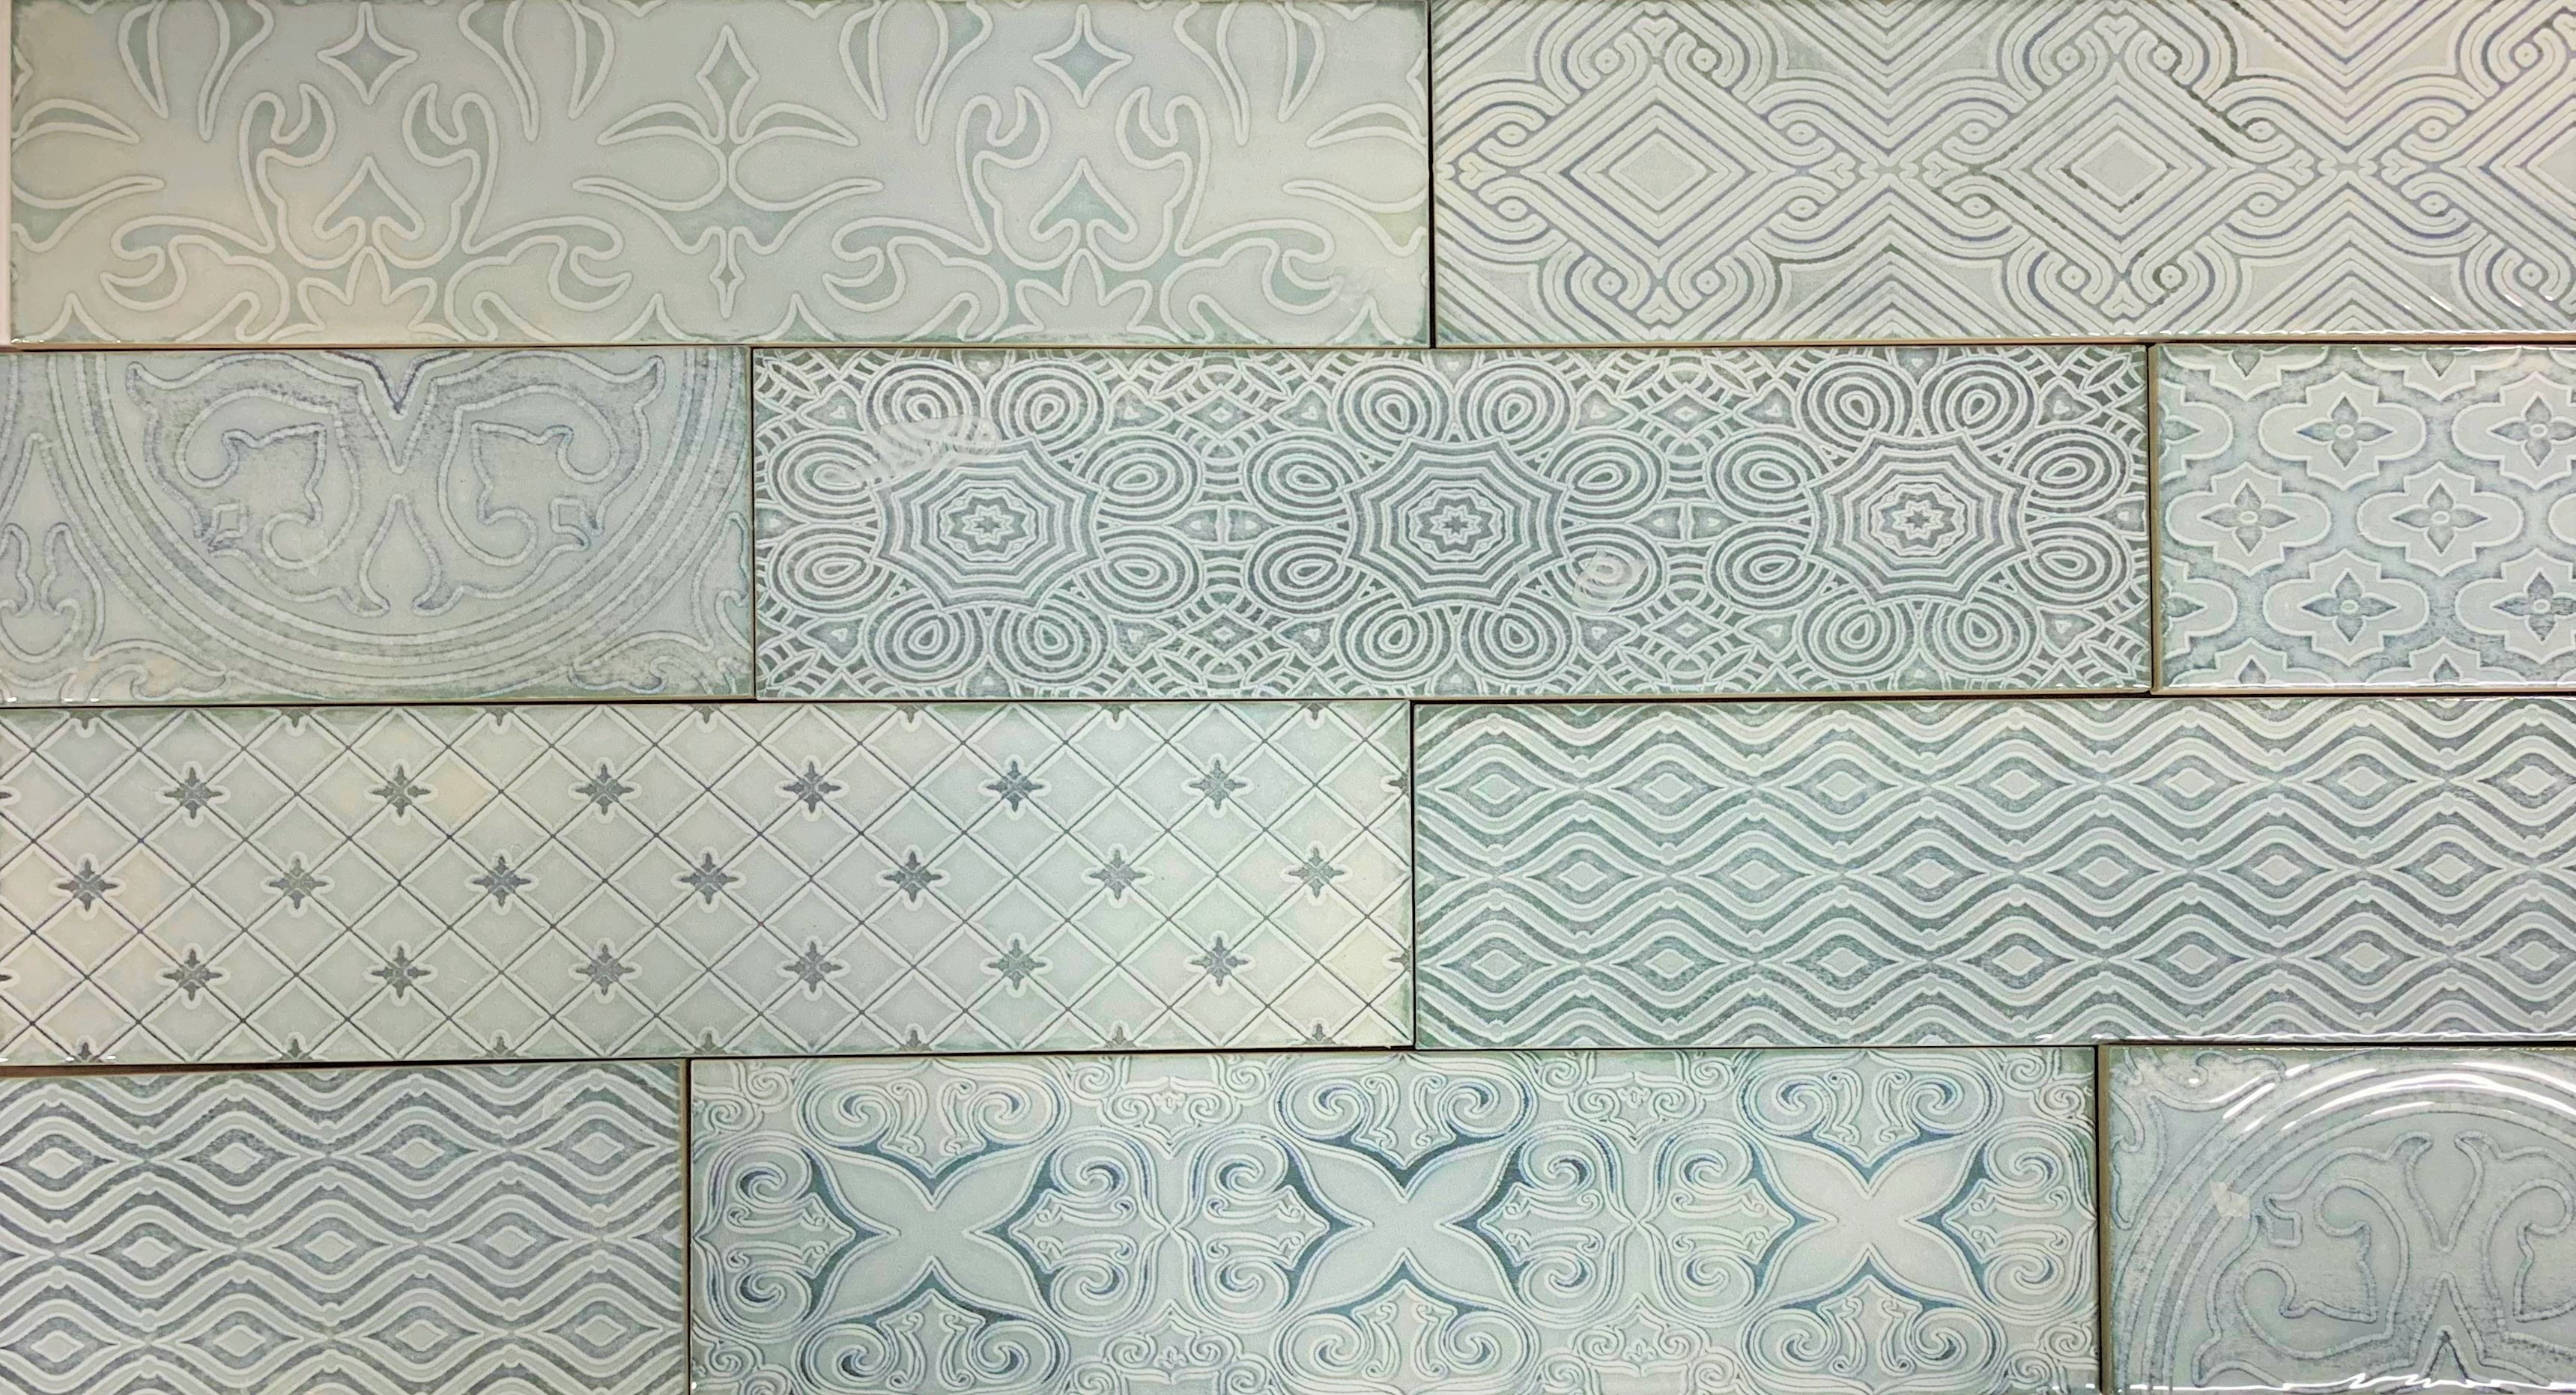 3 X 12 Atlas Sea Decorative Subway Ceramic Tile (8 mixed patterns)